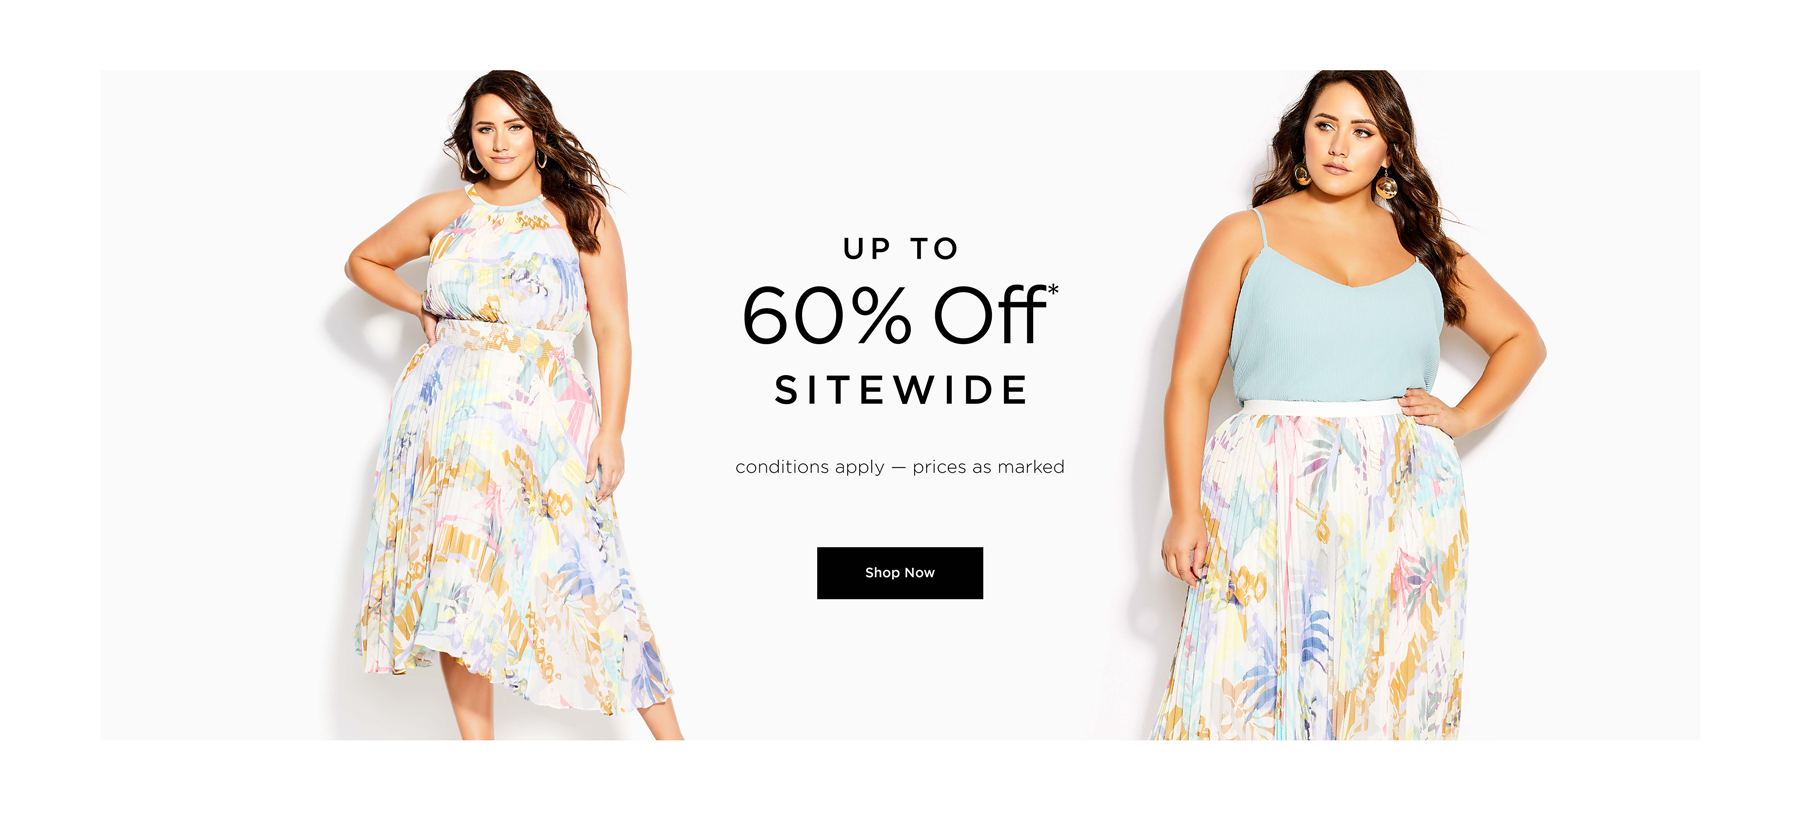 Up to 60% off* Sitewide. Conditions apply - prices as marked. Shop Now.